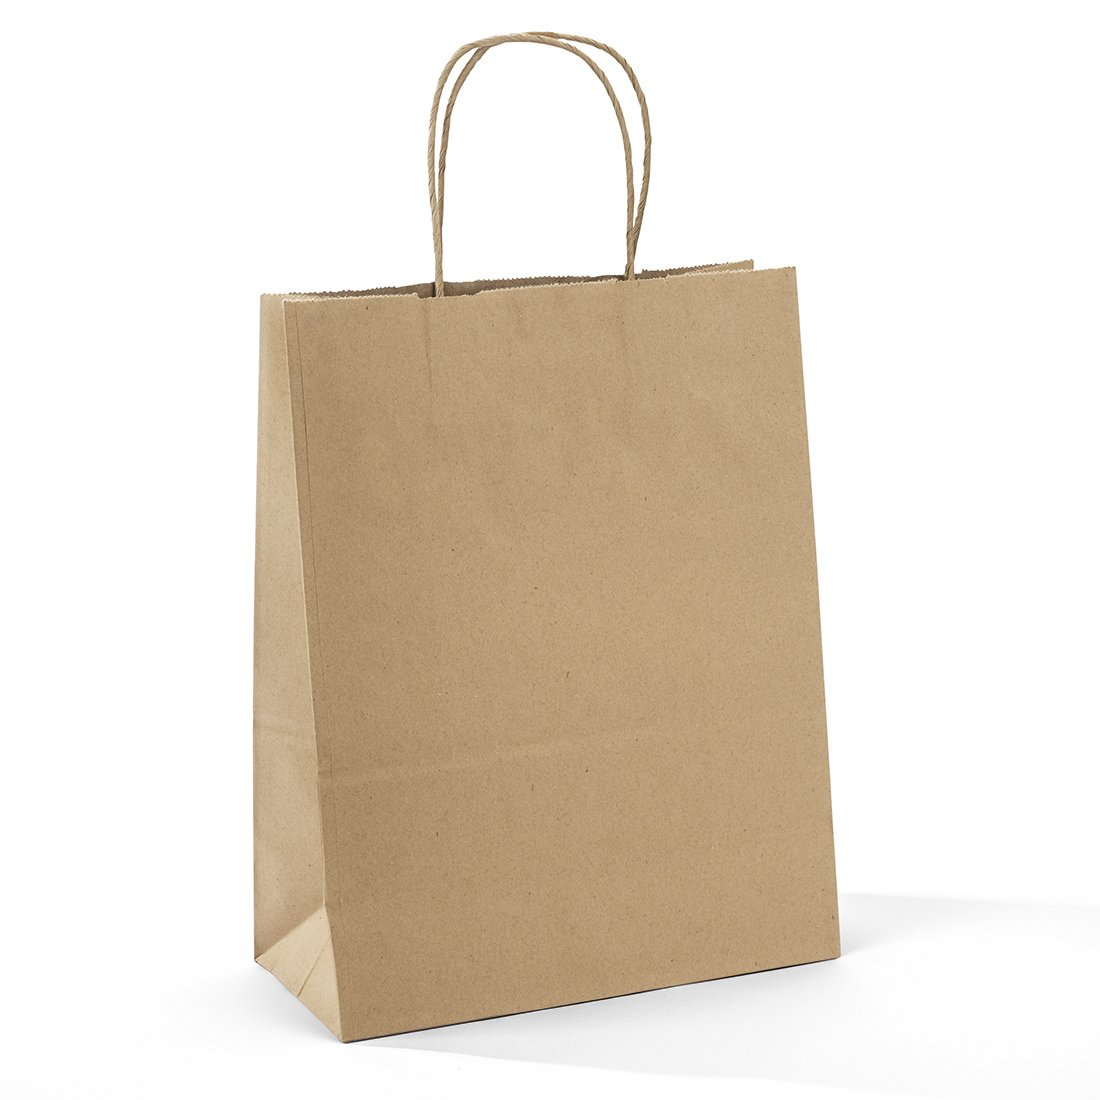 Halulu 10'' x 5'' x 13'' Brown Kraft Paper Bags - Gift bags with Handles, Shopping Durable Reusable Merchandise Retail Bags (100pc)